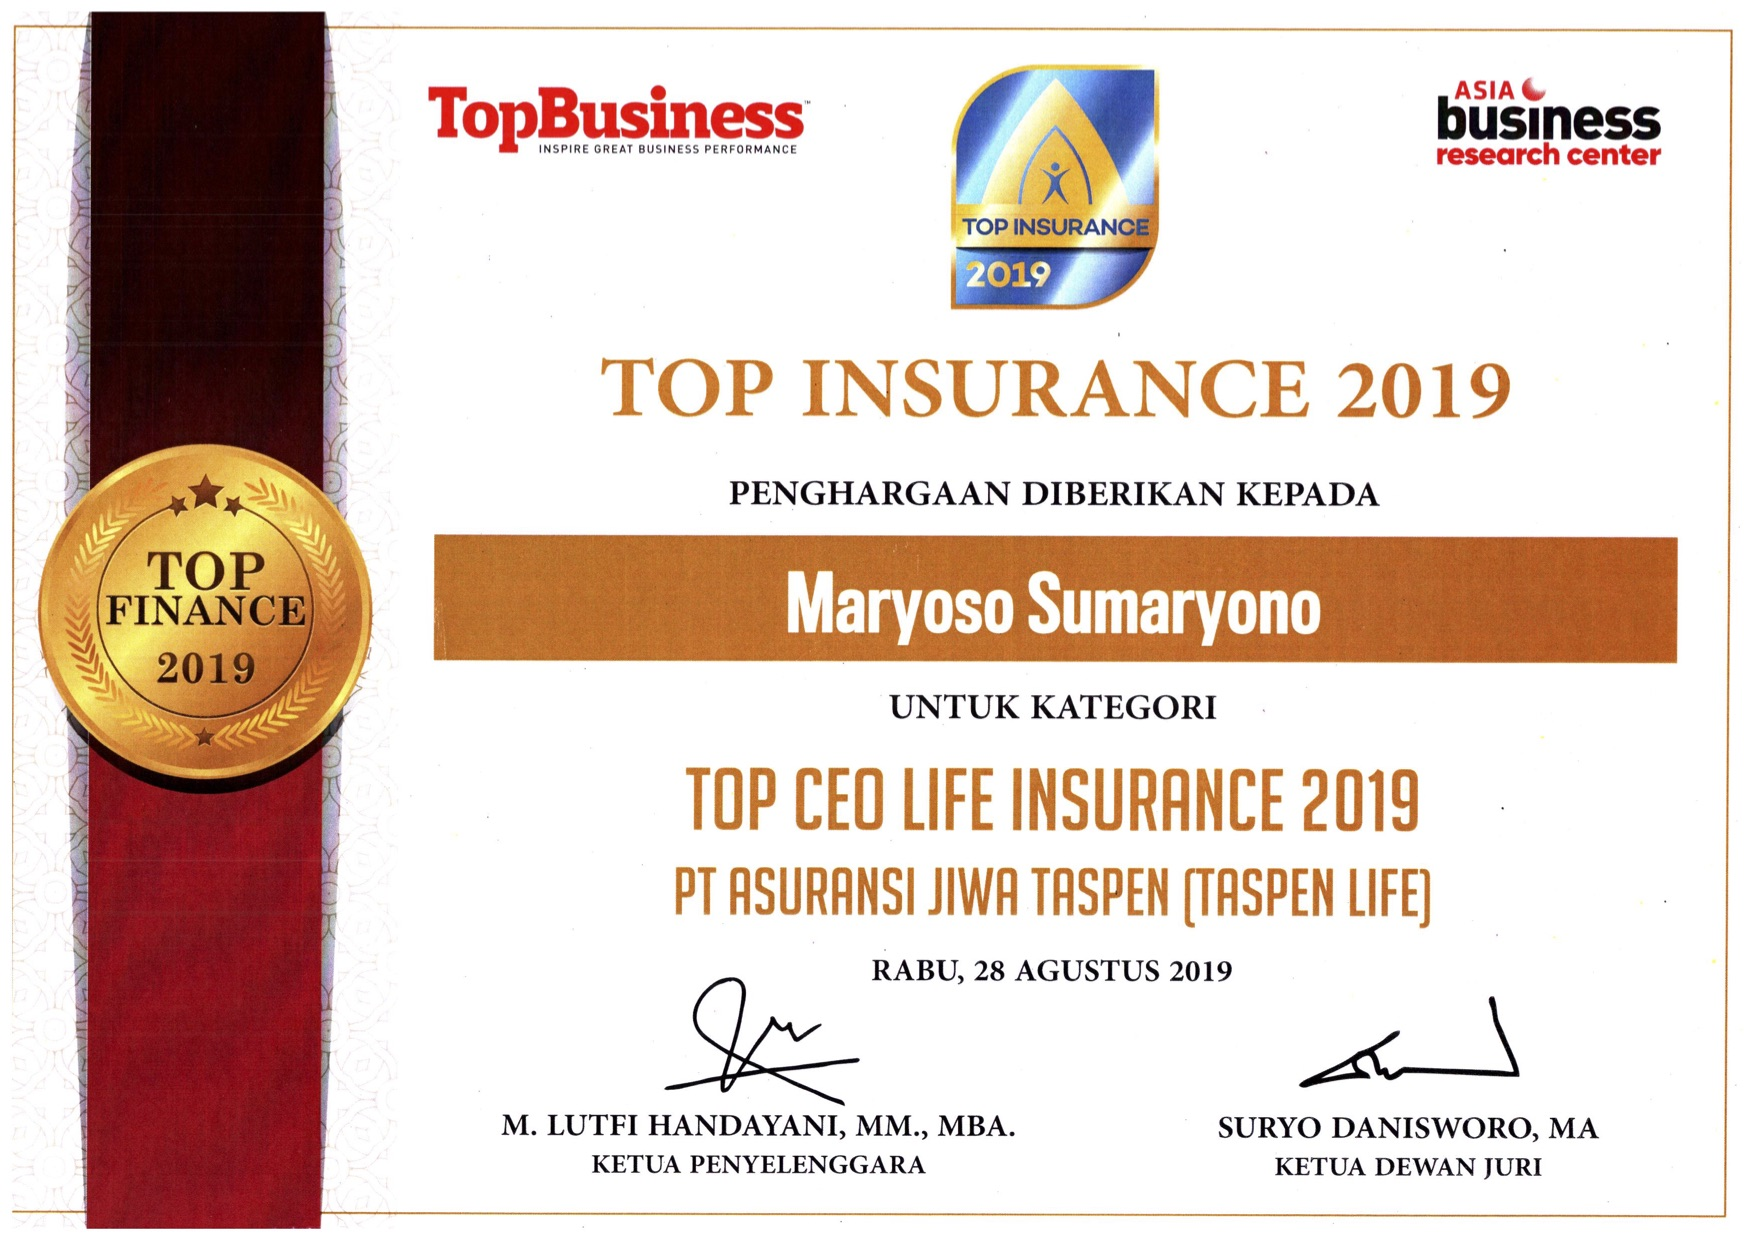 Top CEO Life Insurance 2019